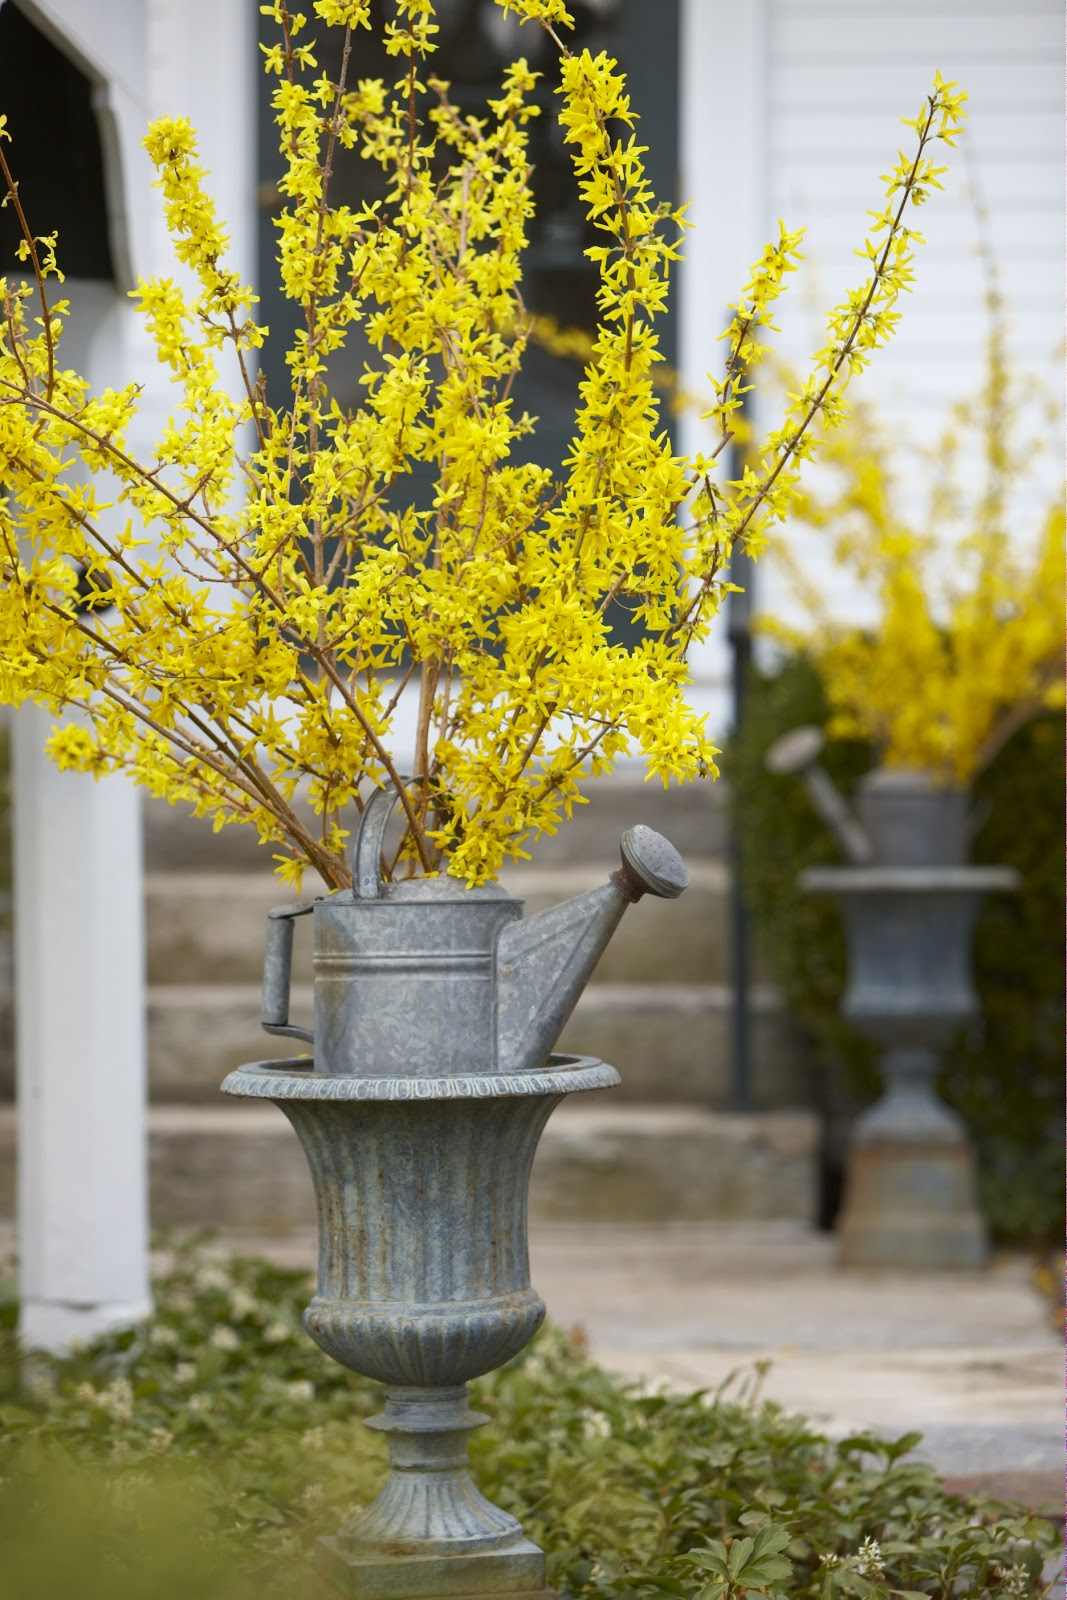 of screaming yellow to your floral arrangements you can enjoy forsythia branches weeks ahead of natures schedule by taking cuttings into your home and - Forsythia Arrangements